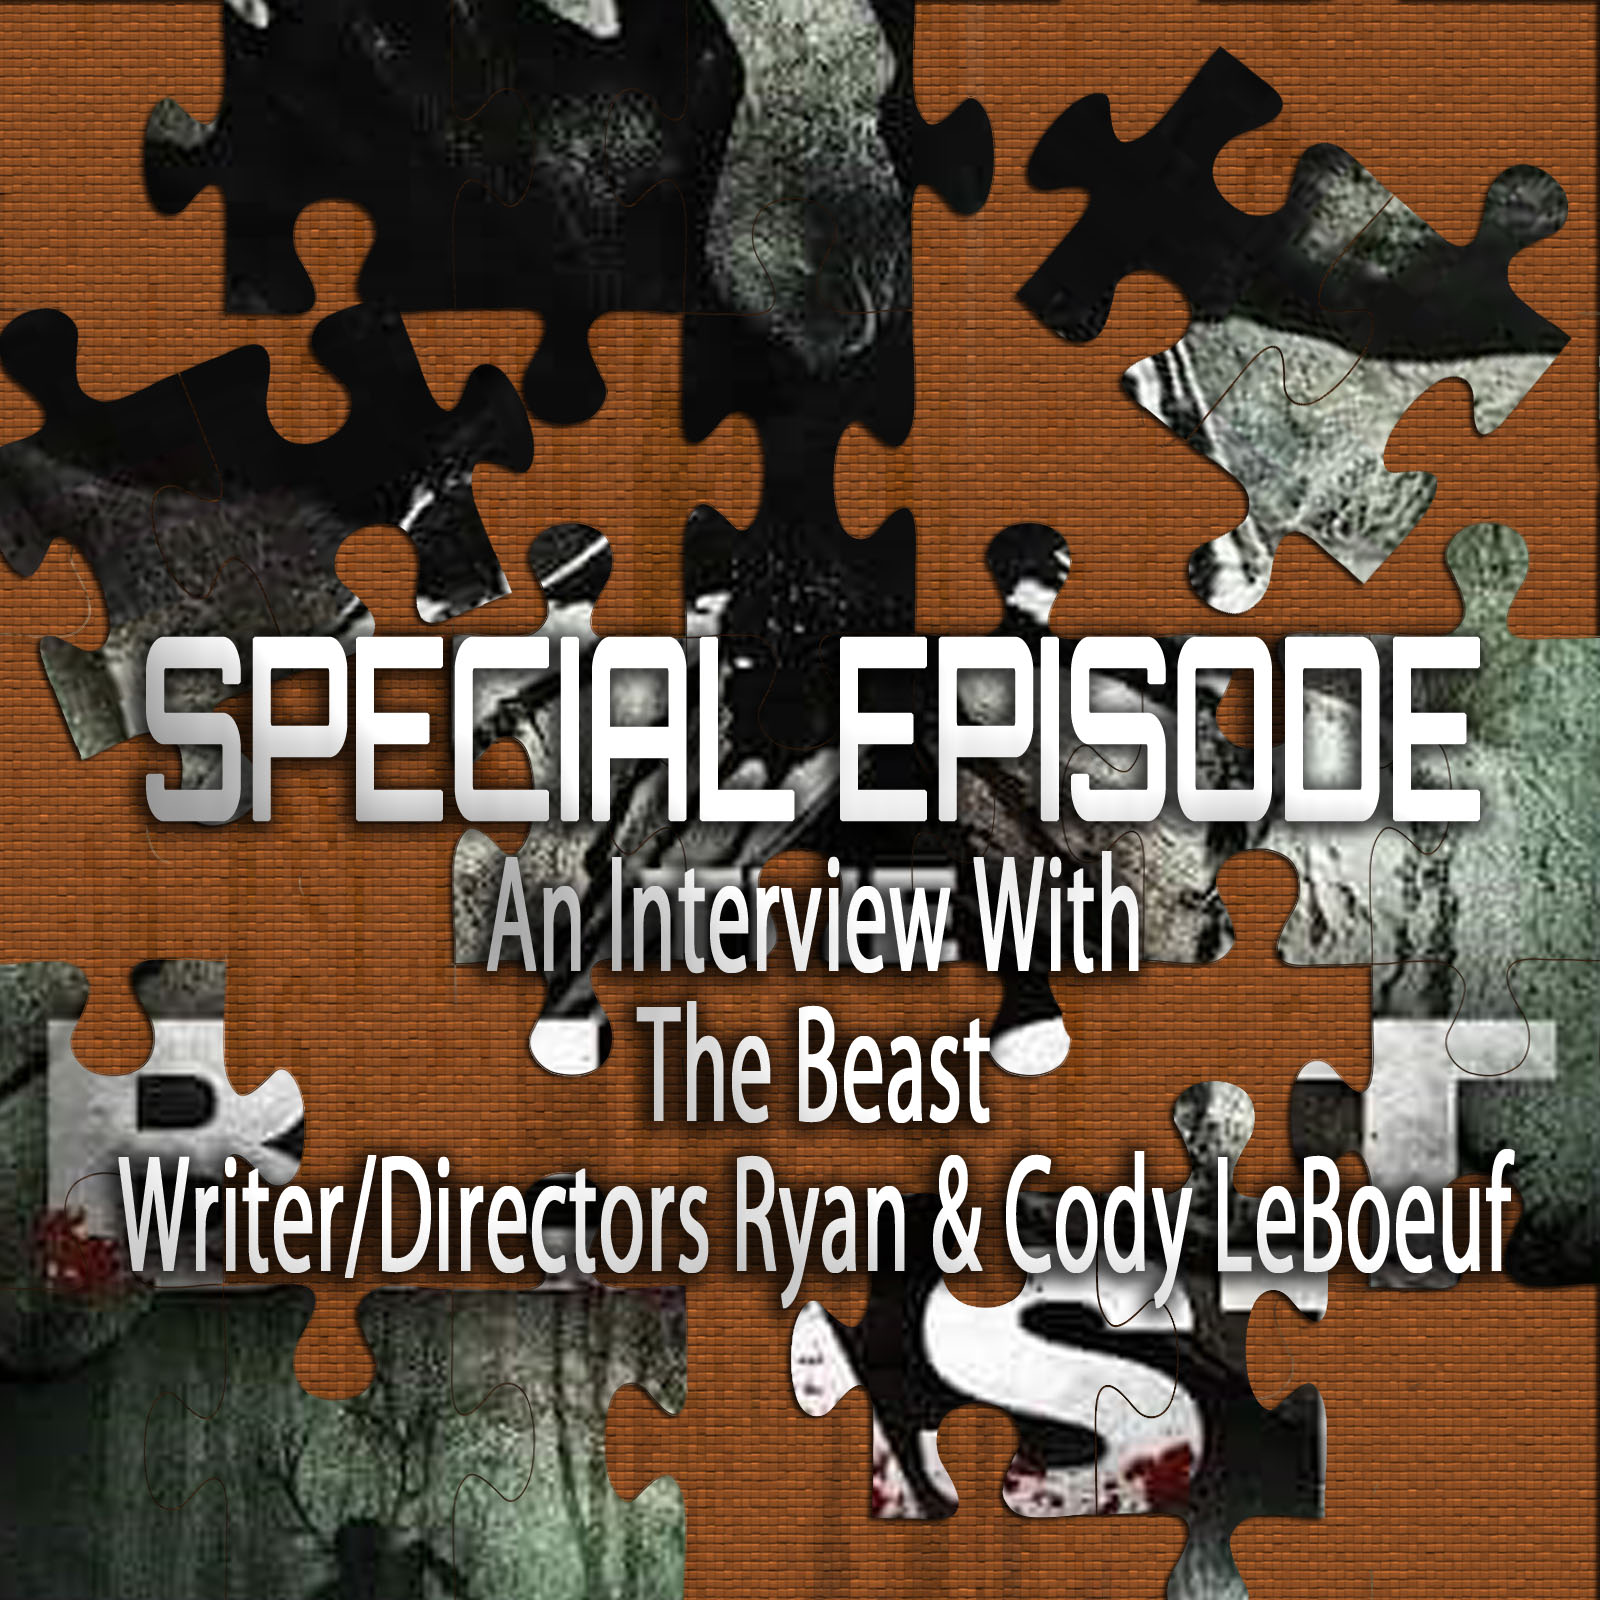 The Beast – Ryan & Cody LeBoeuf Interview (Special Episode)